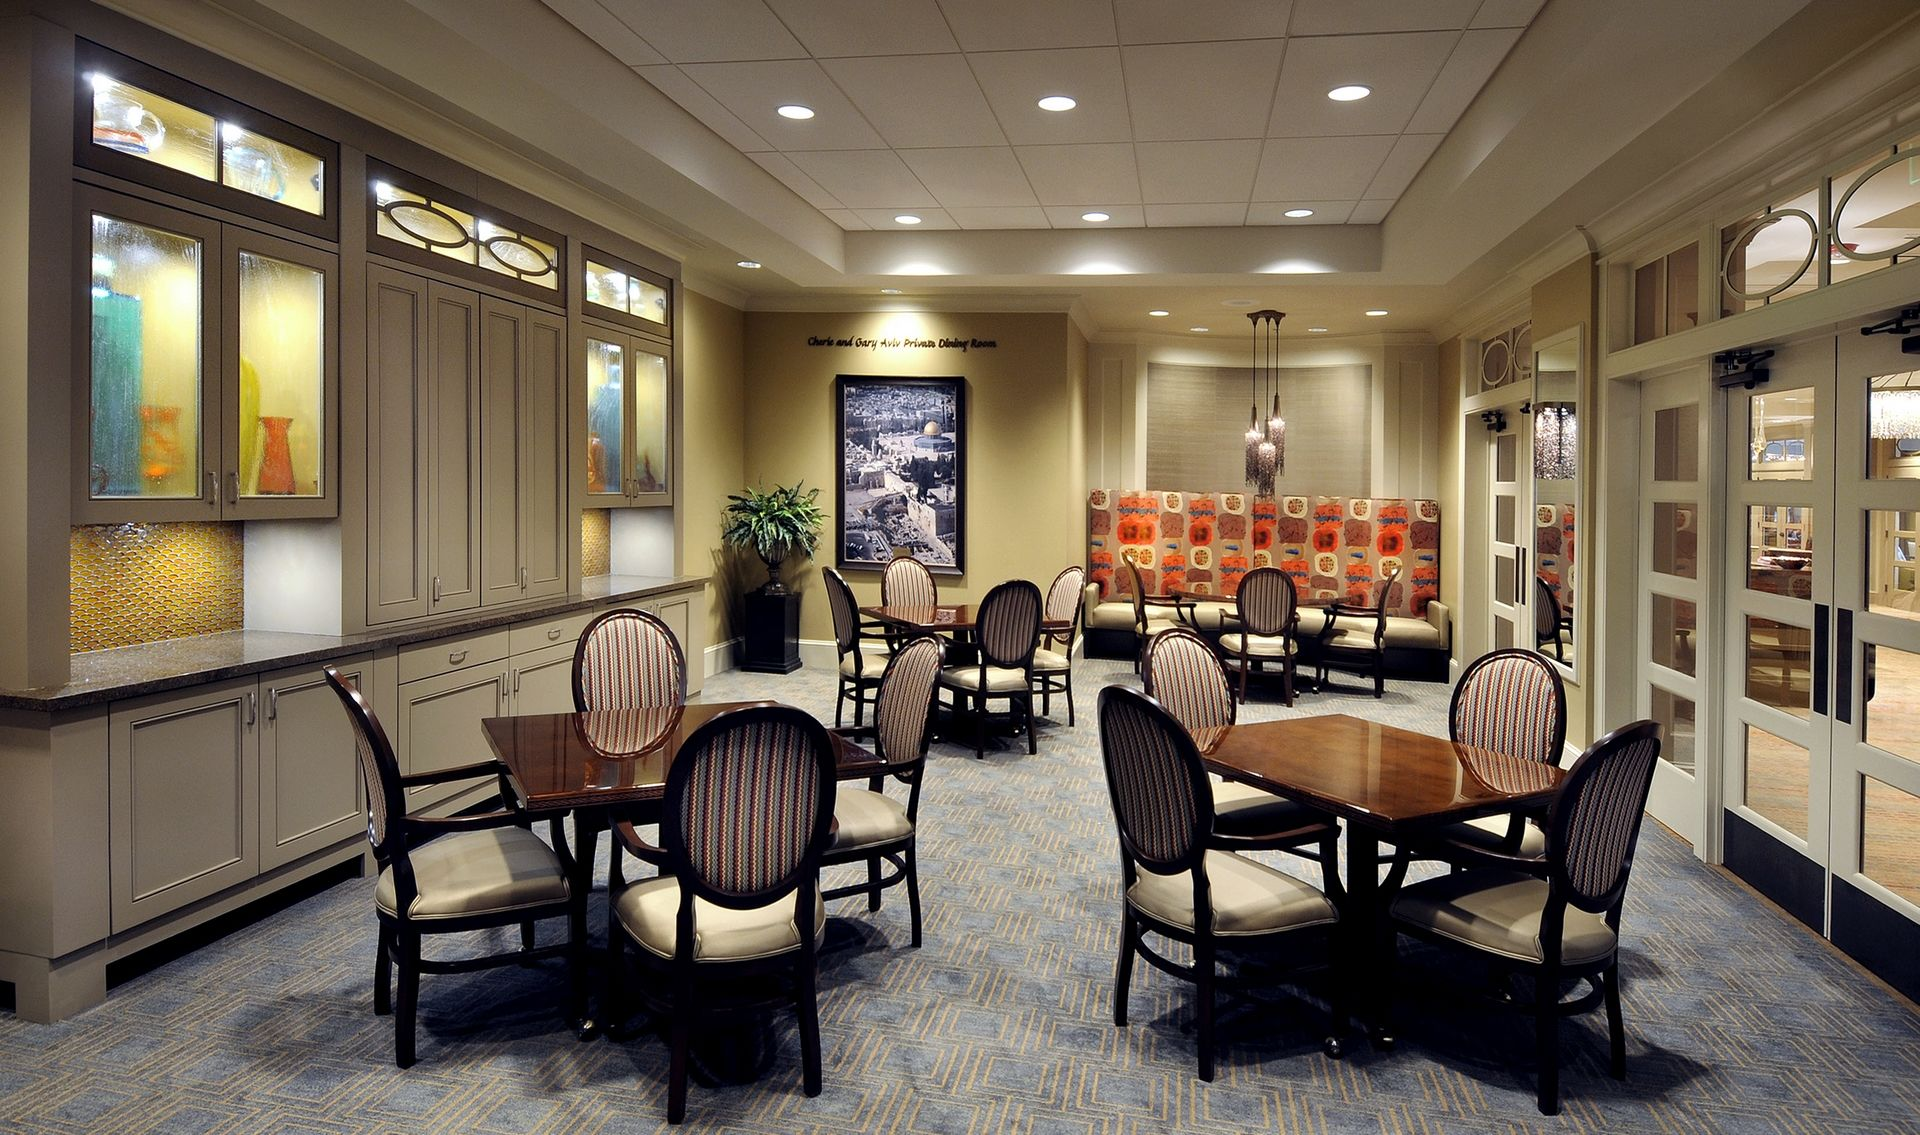 Berman Commons | Assisted Living And Memory Care Design THW Private dining